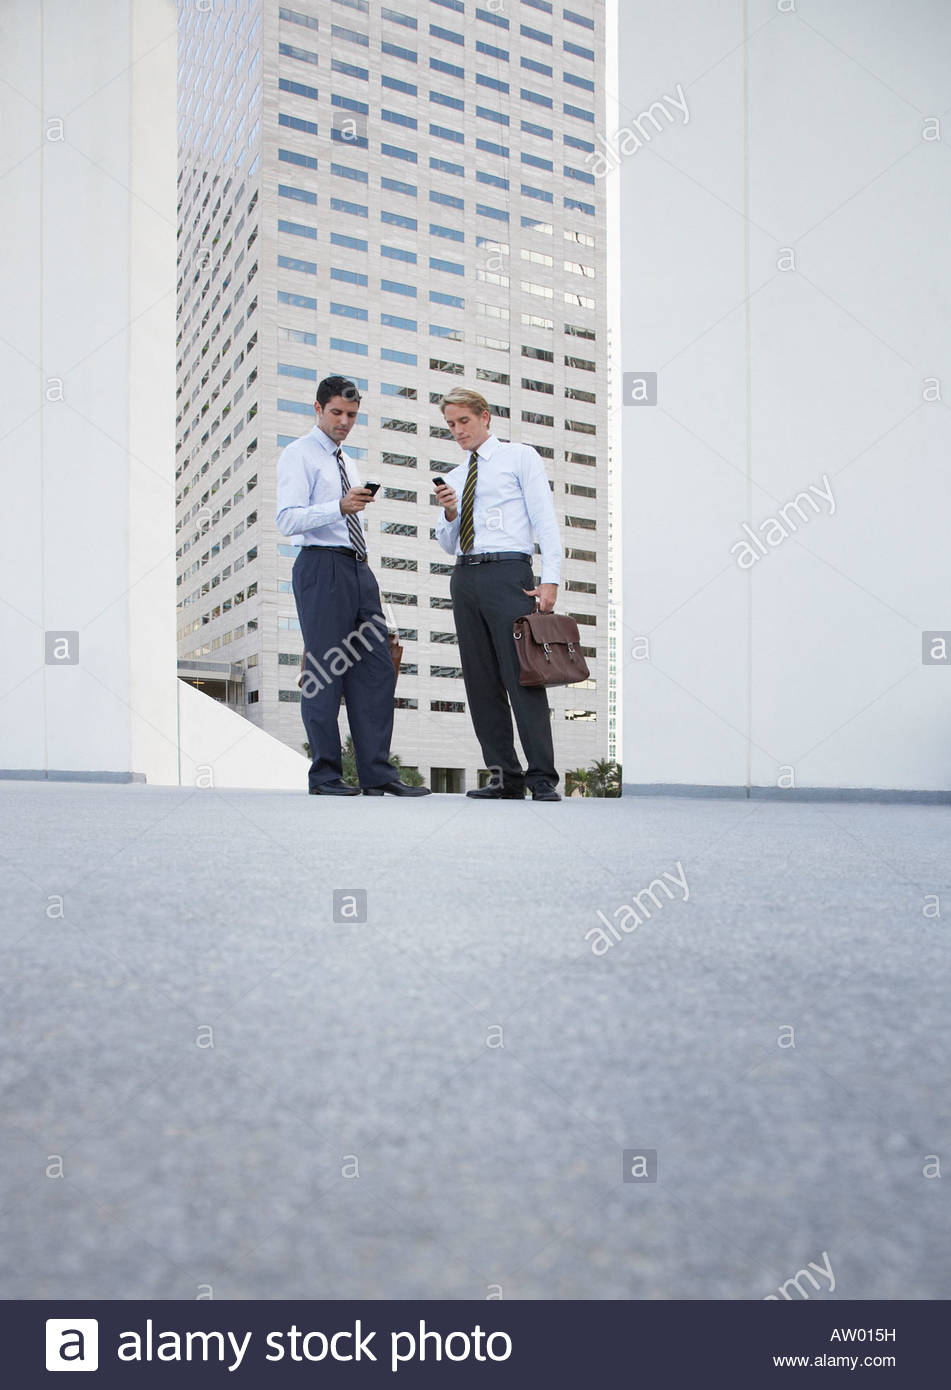 Two businessman standing outdoors looking at their mobile phones - Stock Image